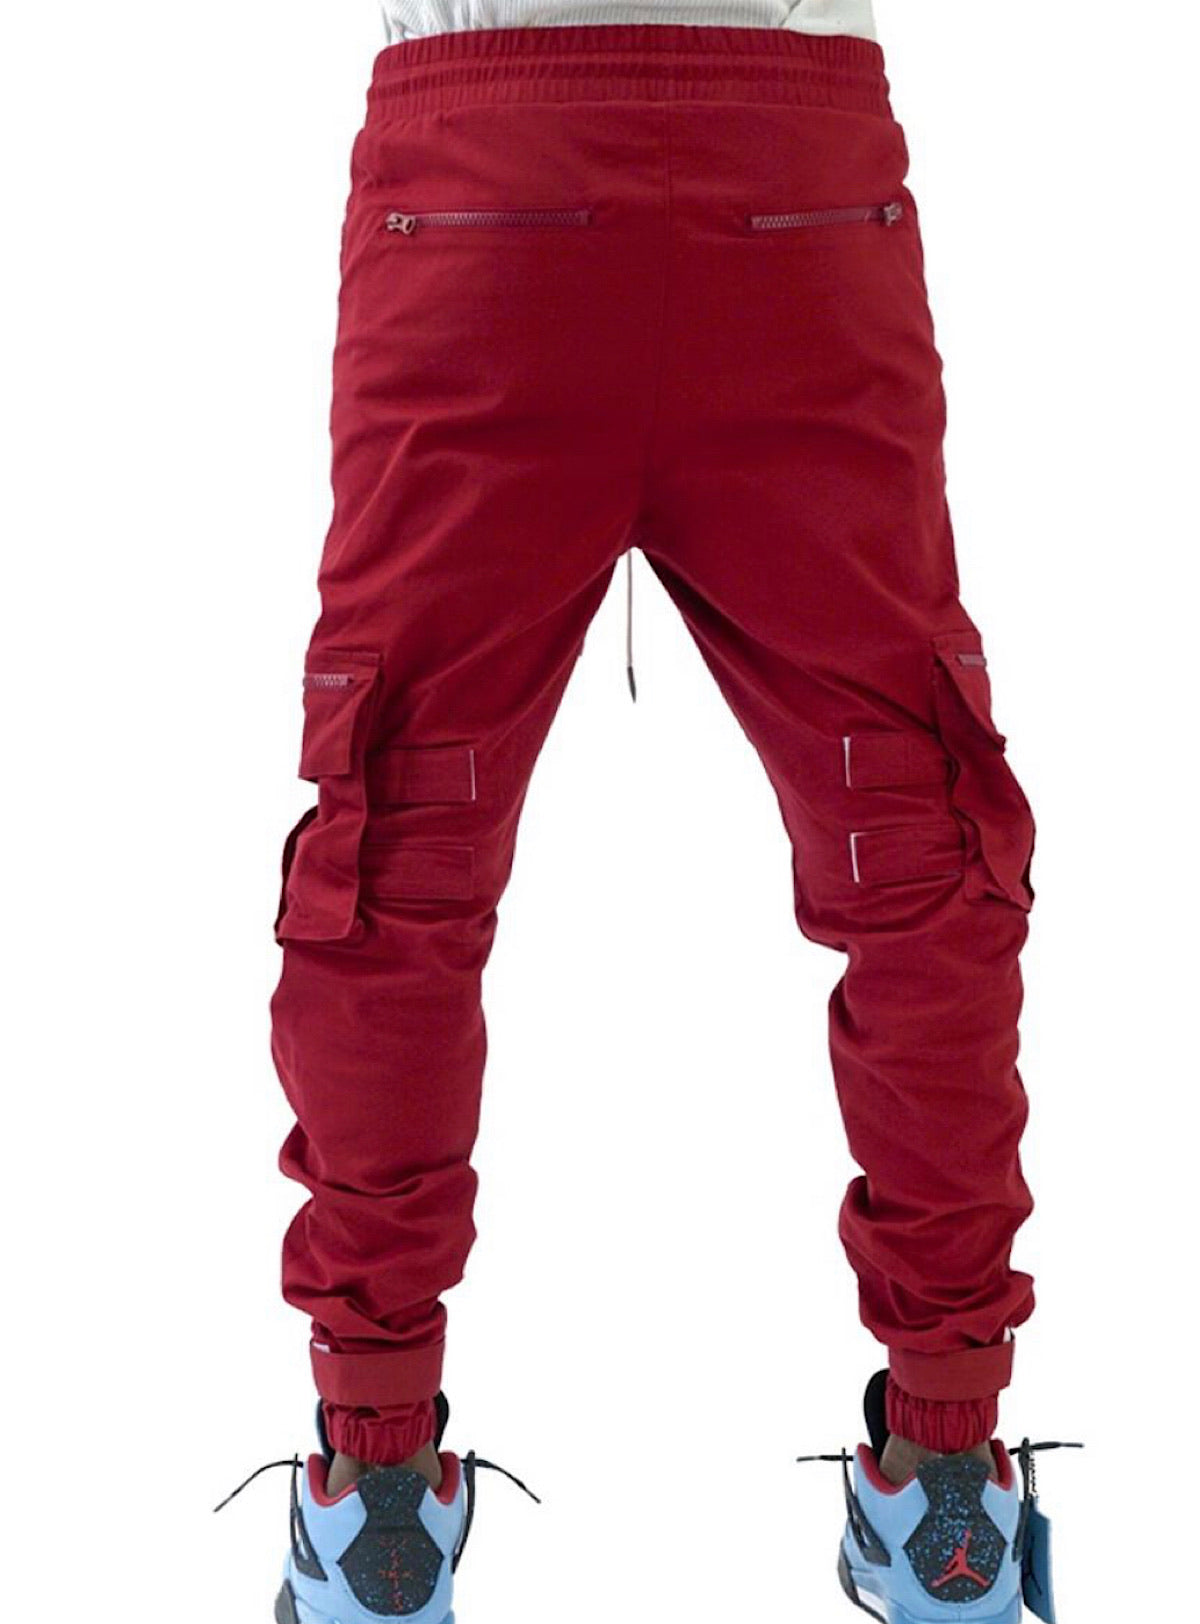 The Hideout Clothing Joggers - Eternal Energy Cargo - Burgundy - SU20-11